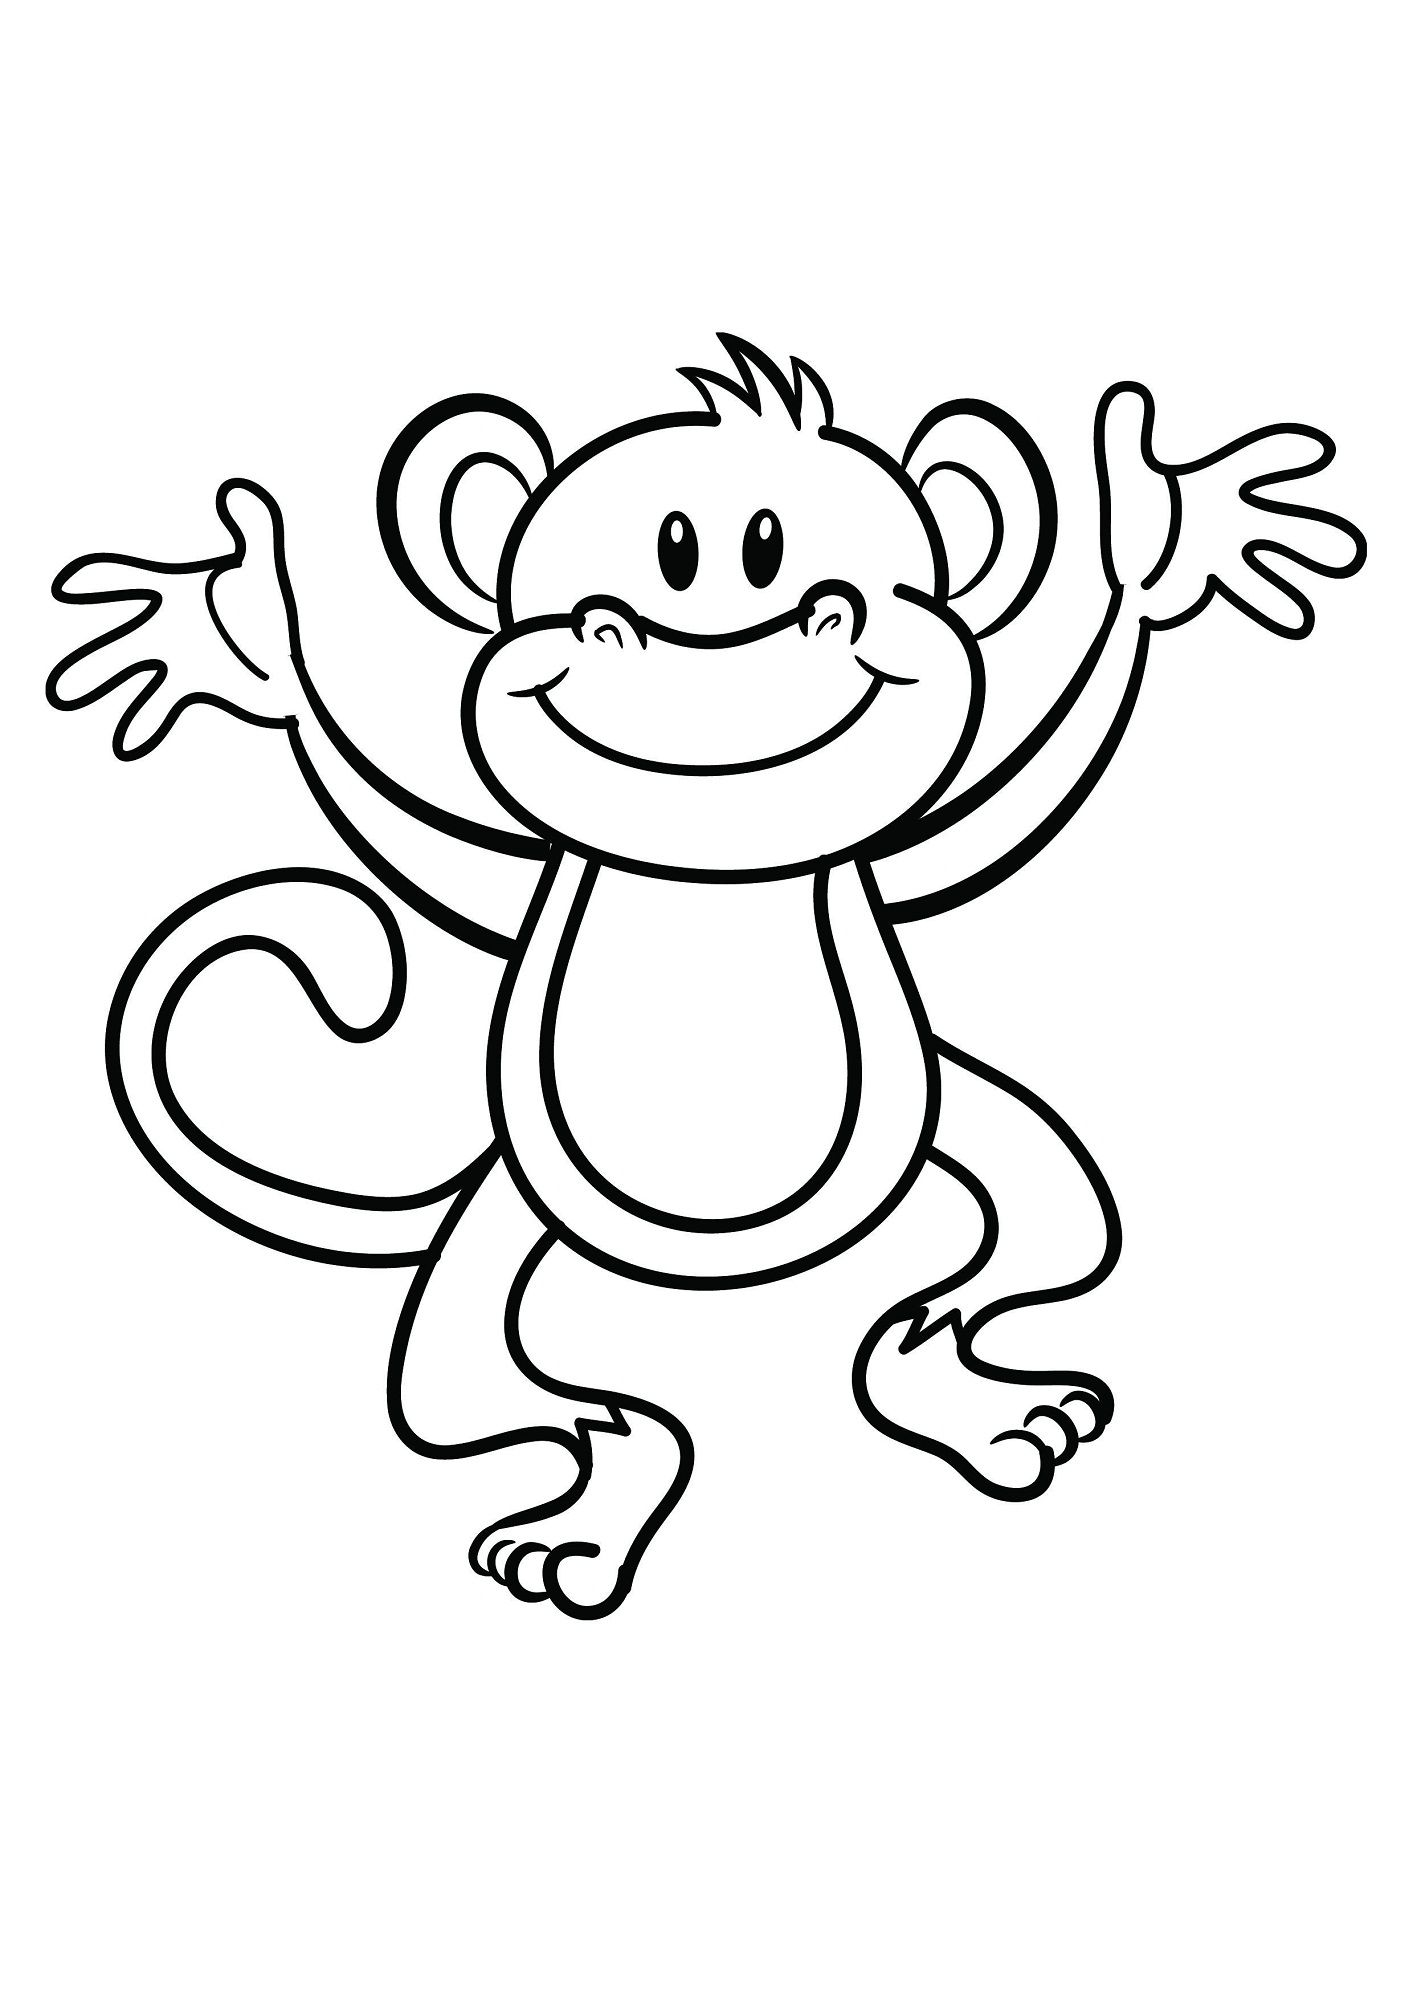 coloring pages of monkeys easy | Preschool | Monkey coloring ...